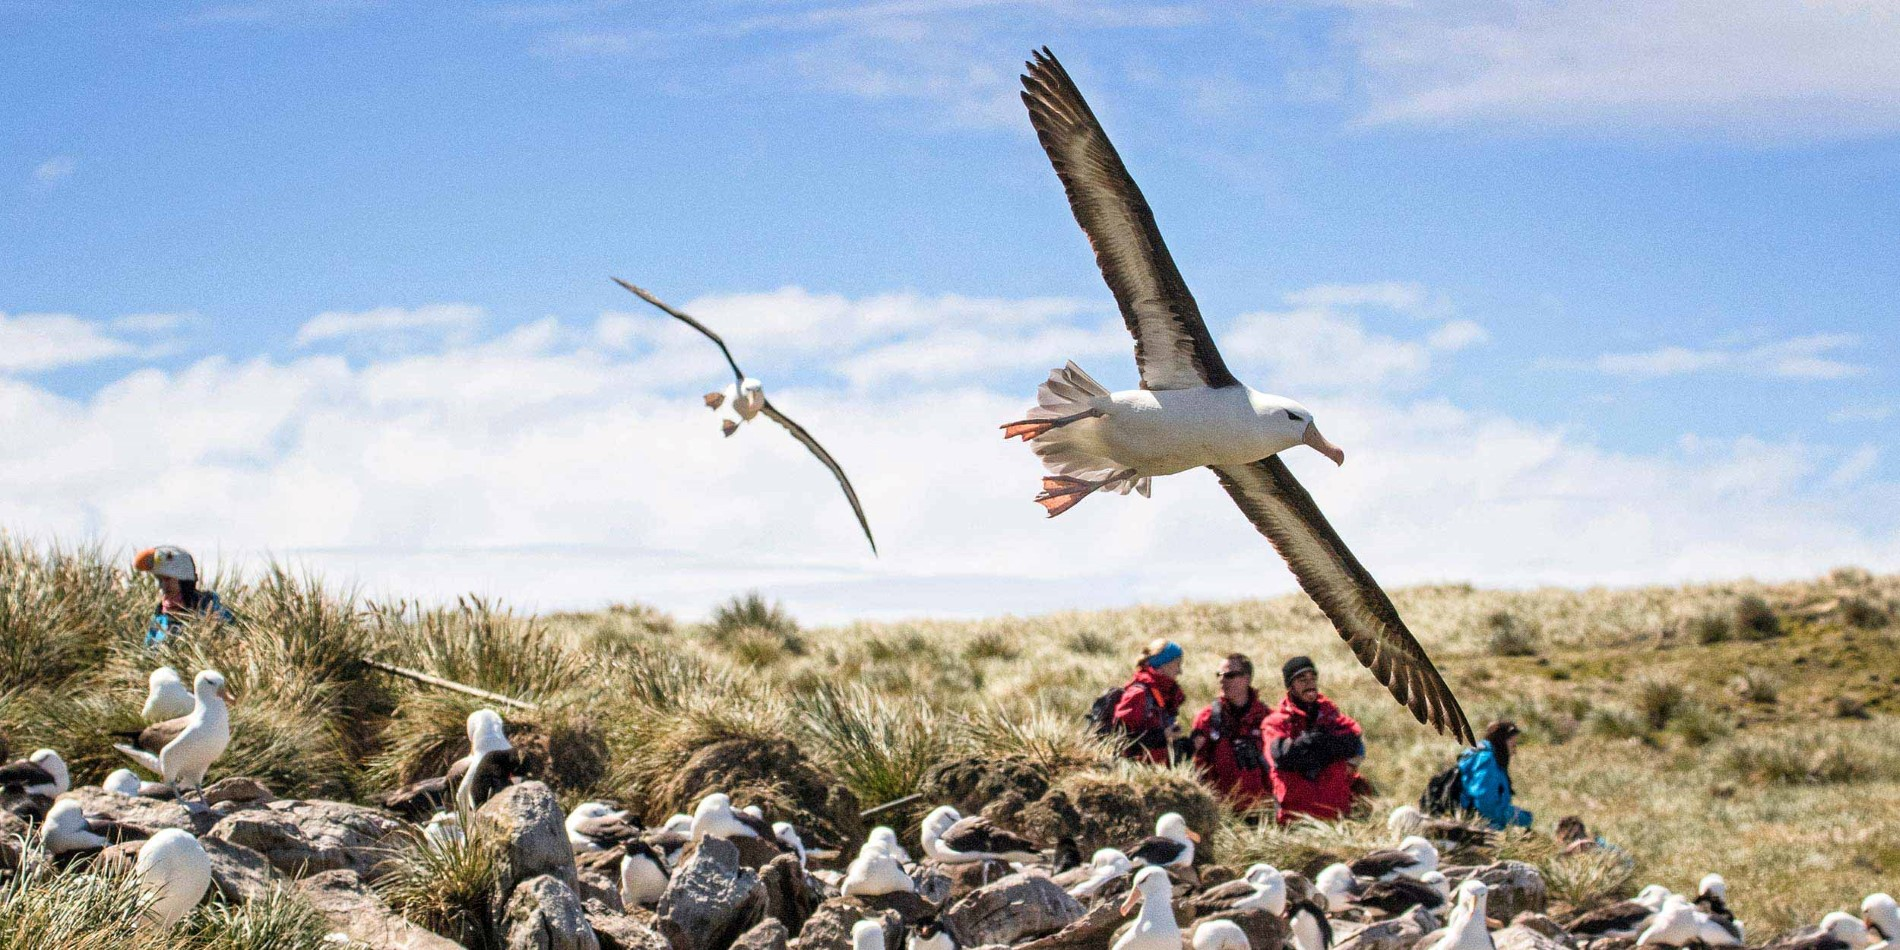 Bird watching at the Falkland Islands